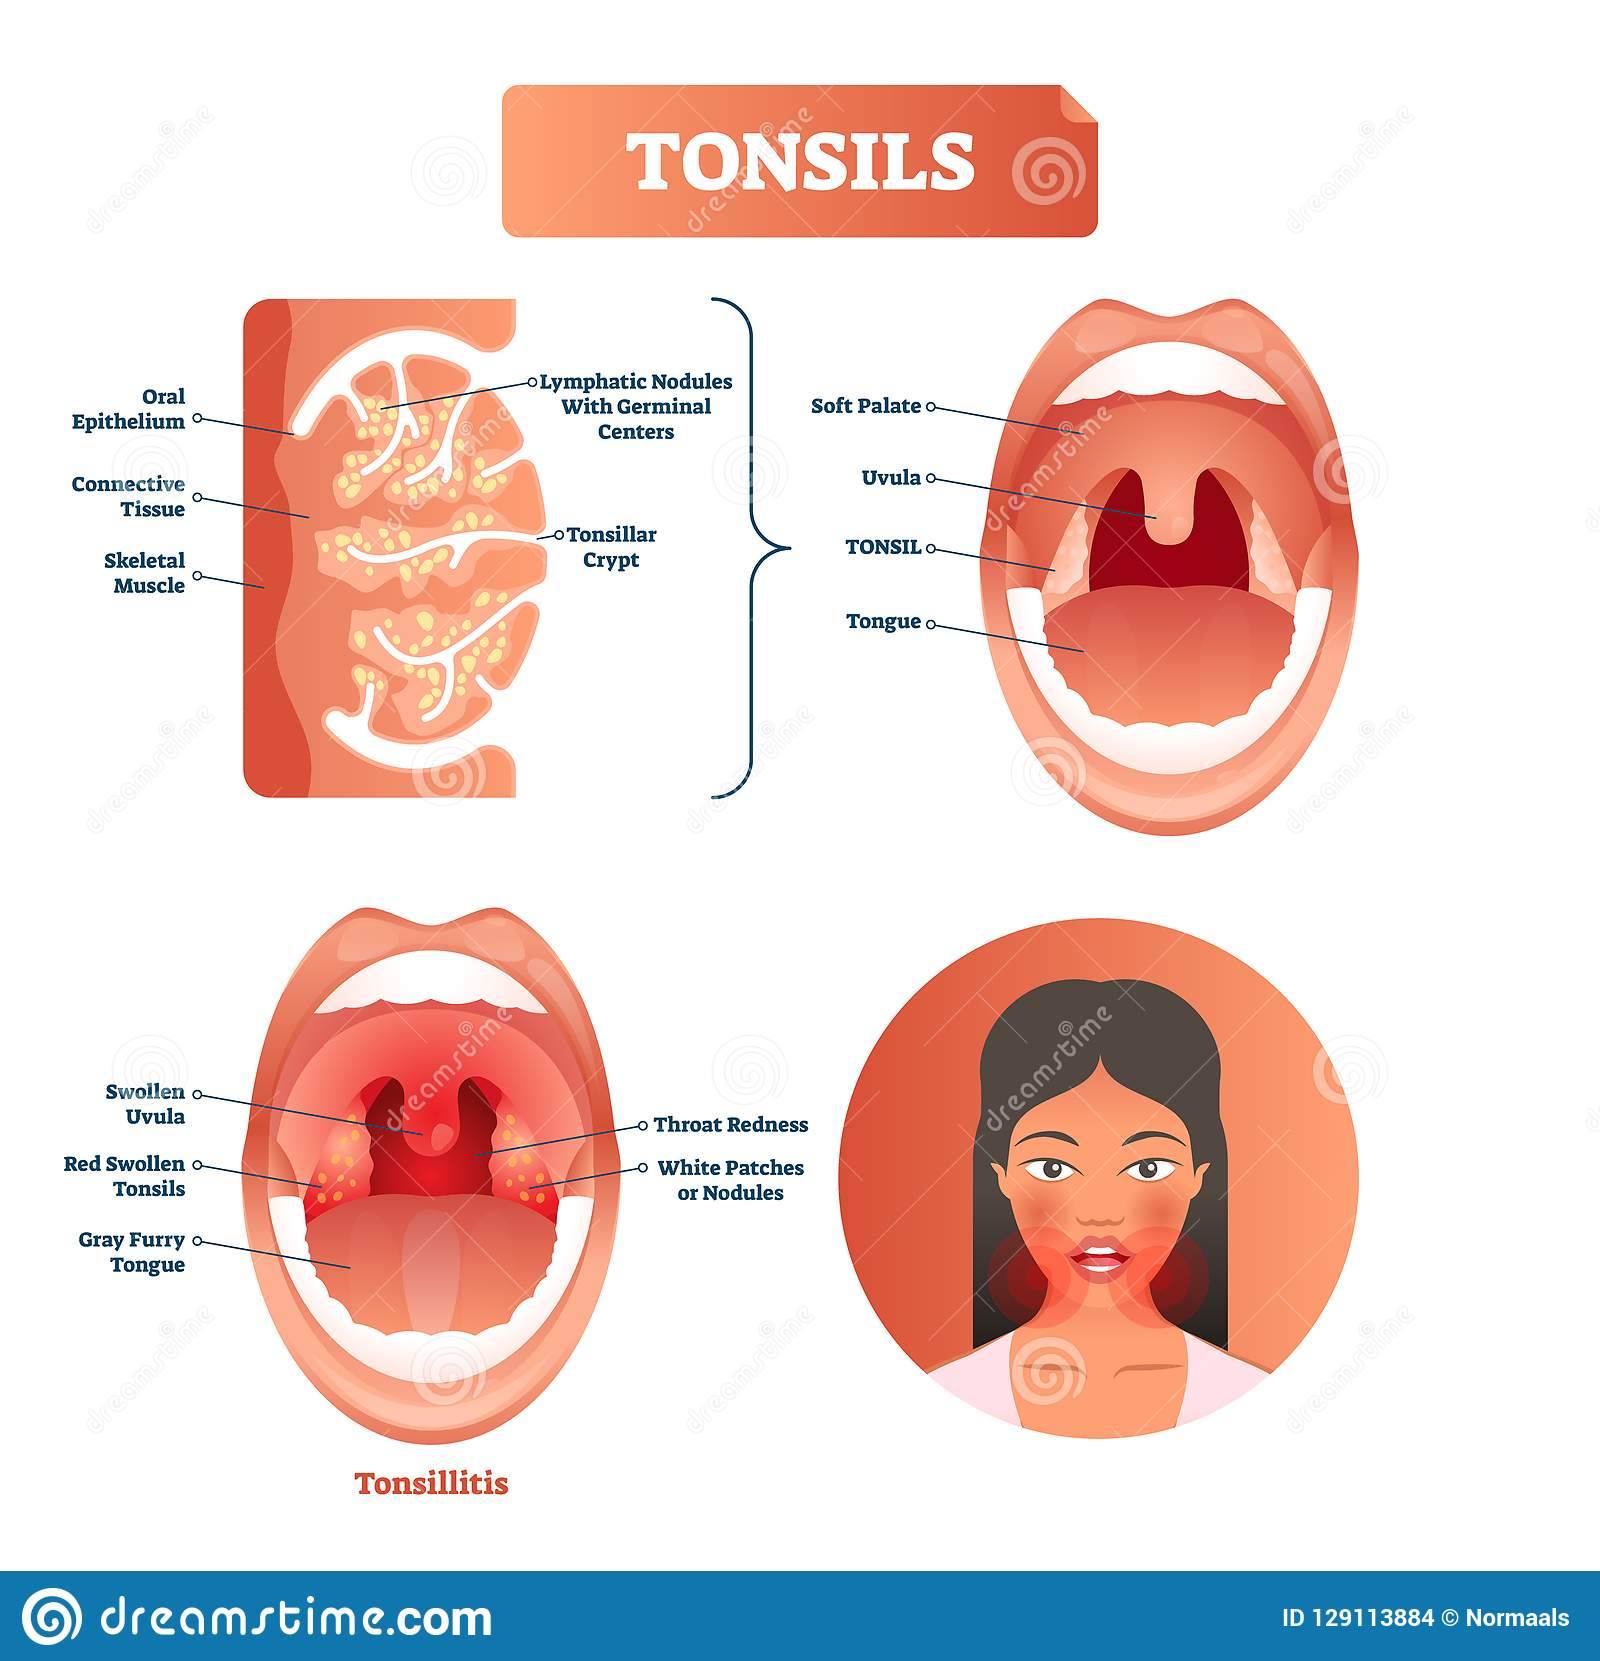 Tonsils Vector Illustration. Tonsillitis Labeled Structure